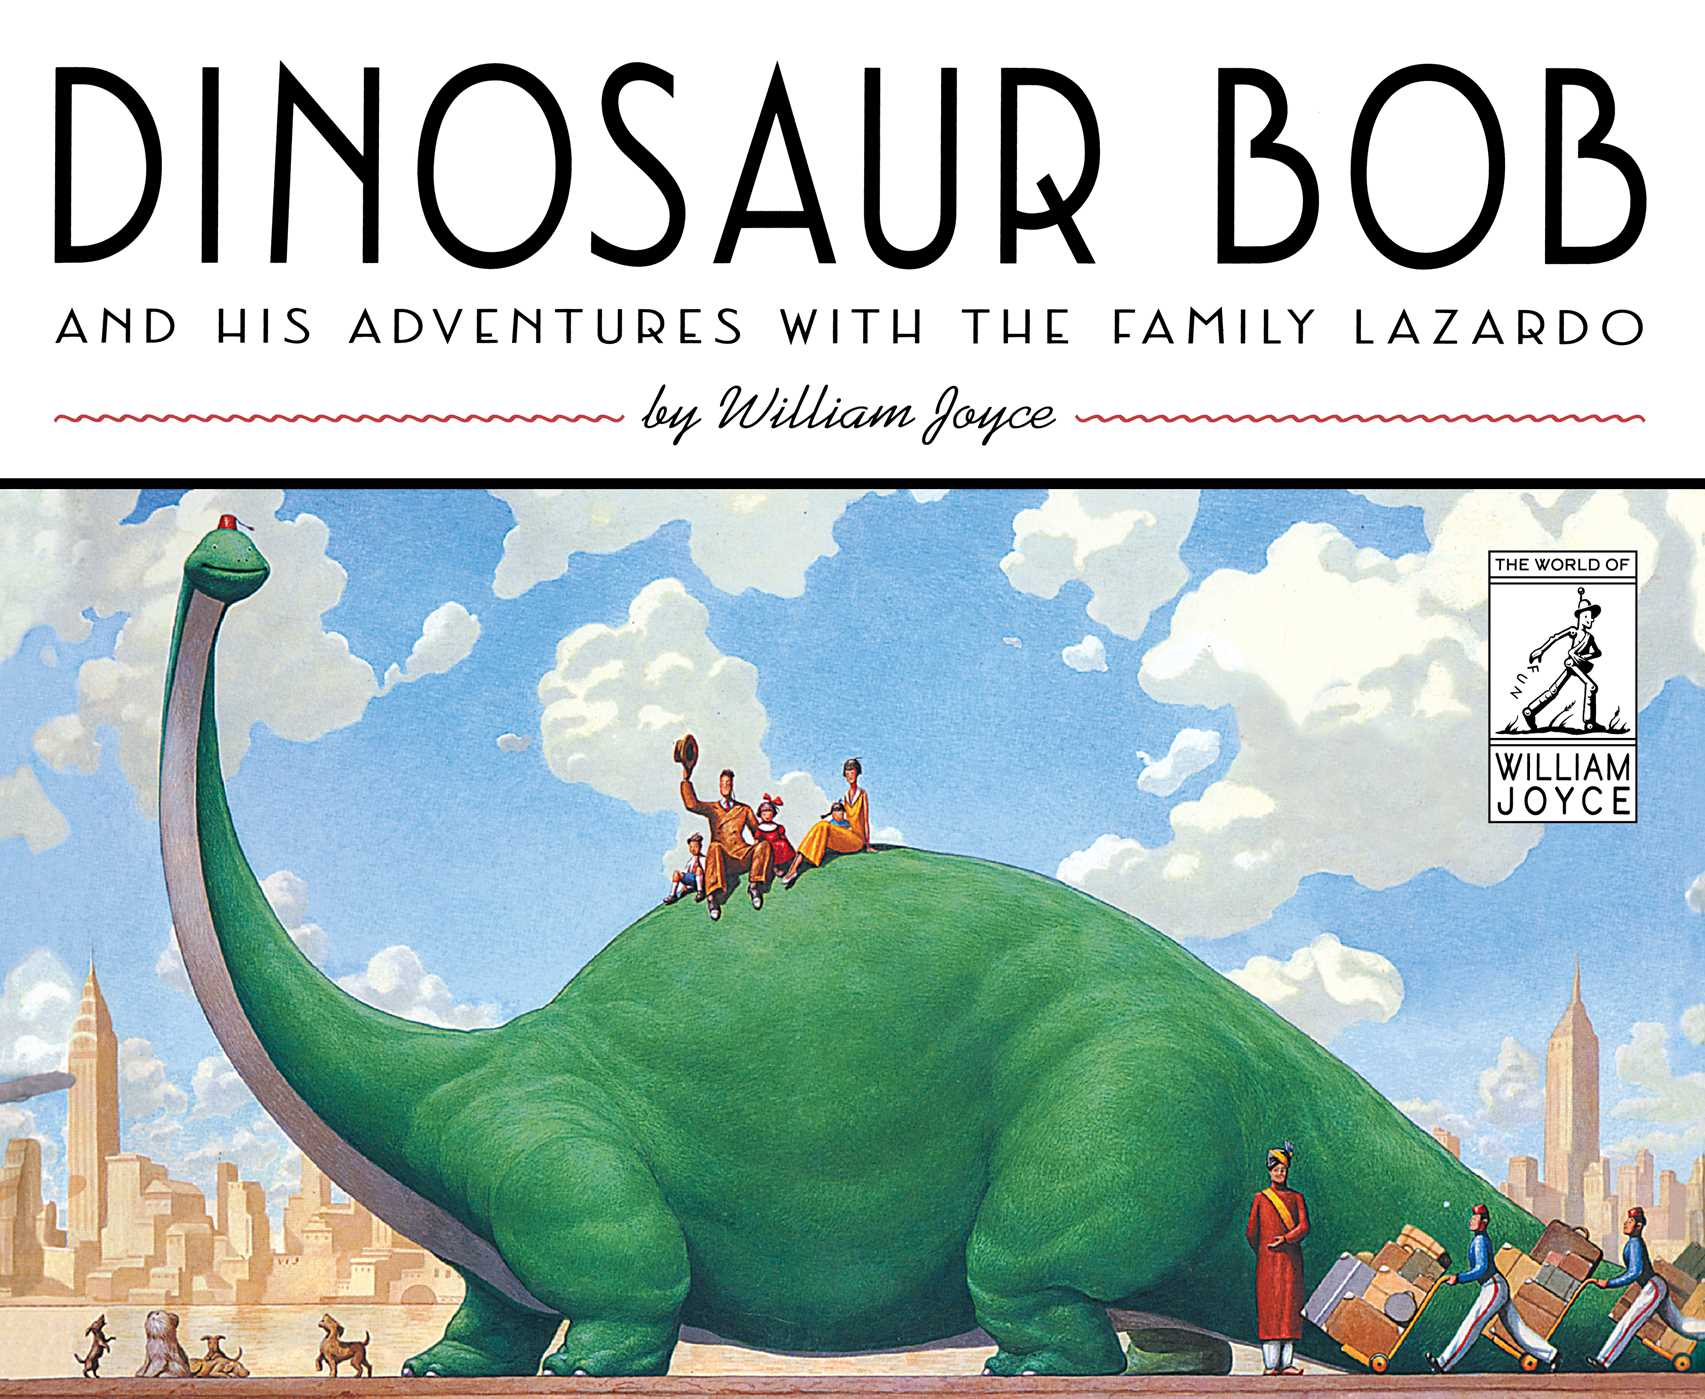 Dinosaur bob and his adventures with the family lazardo 9781481489478 hr